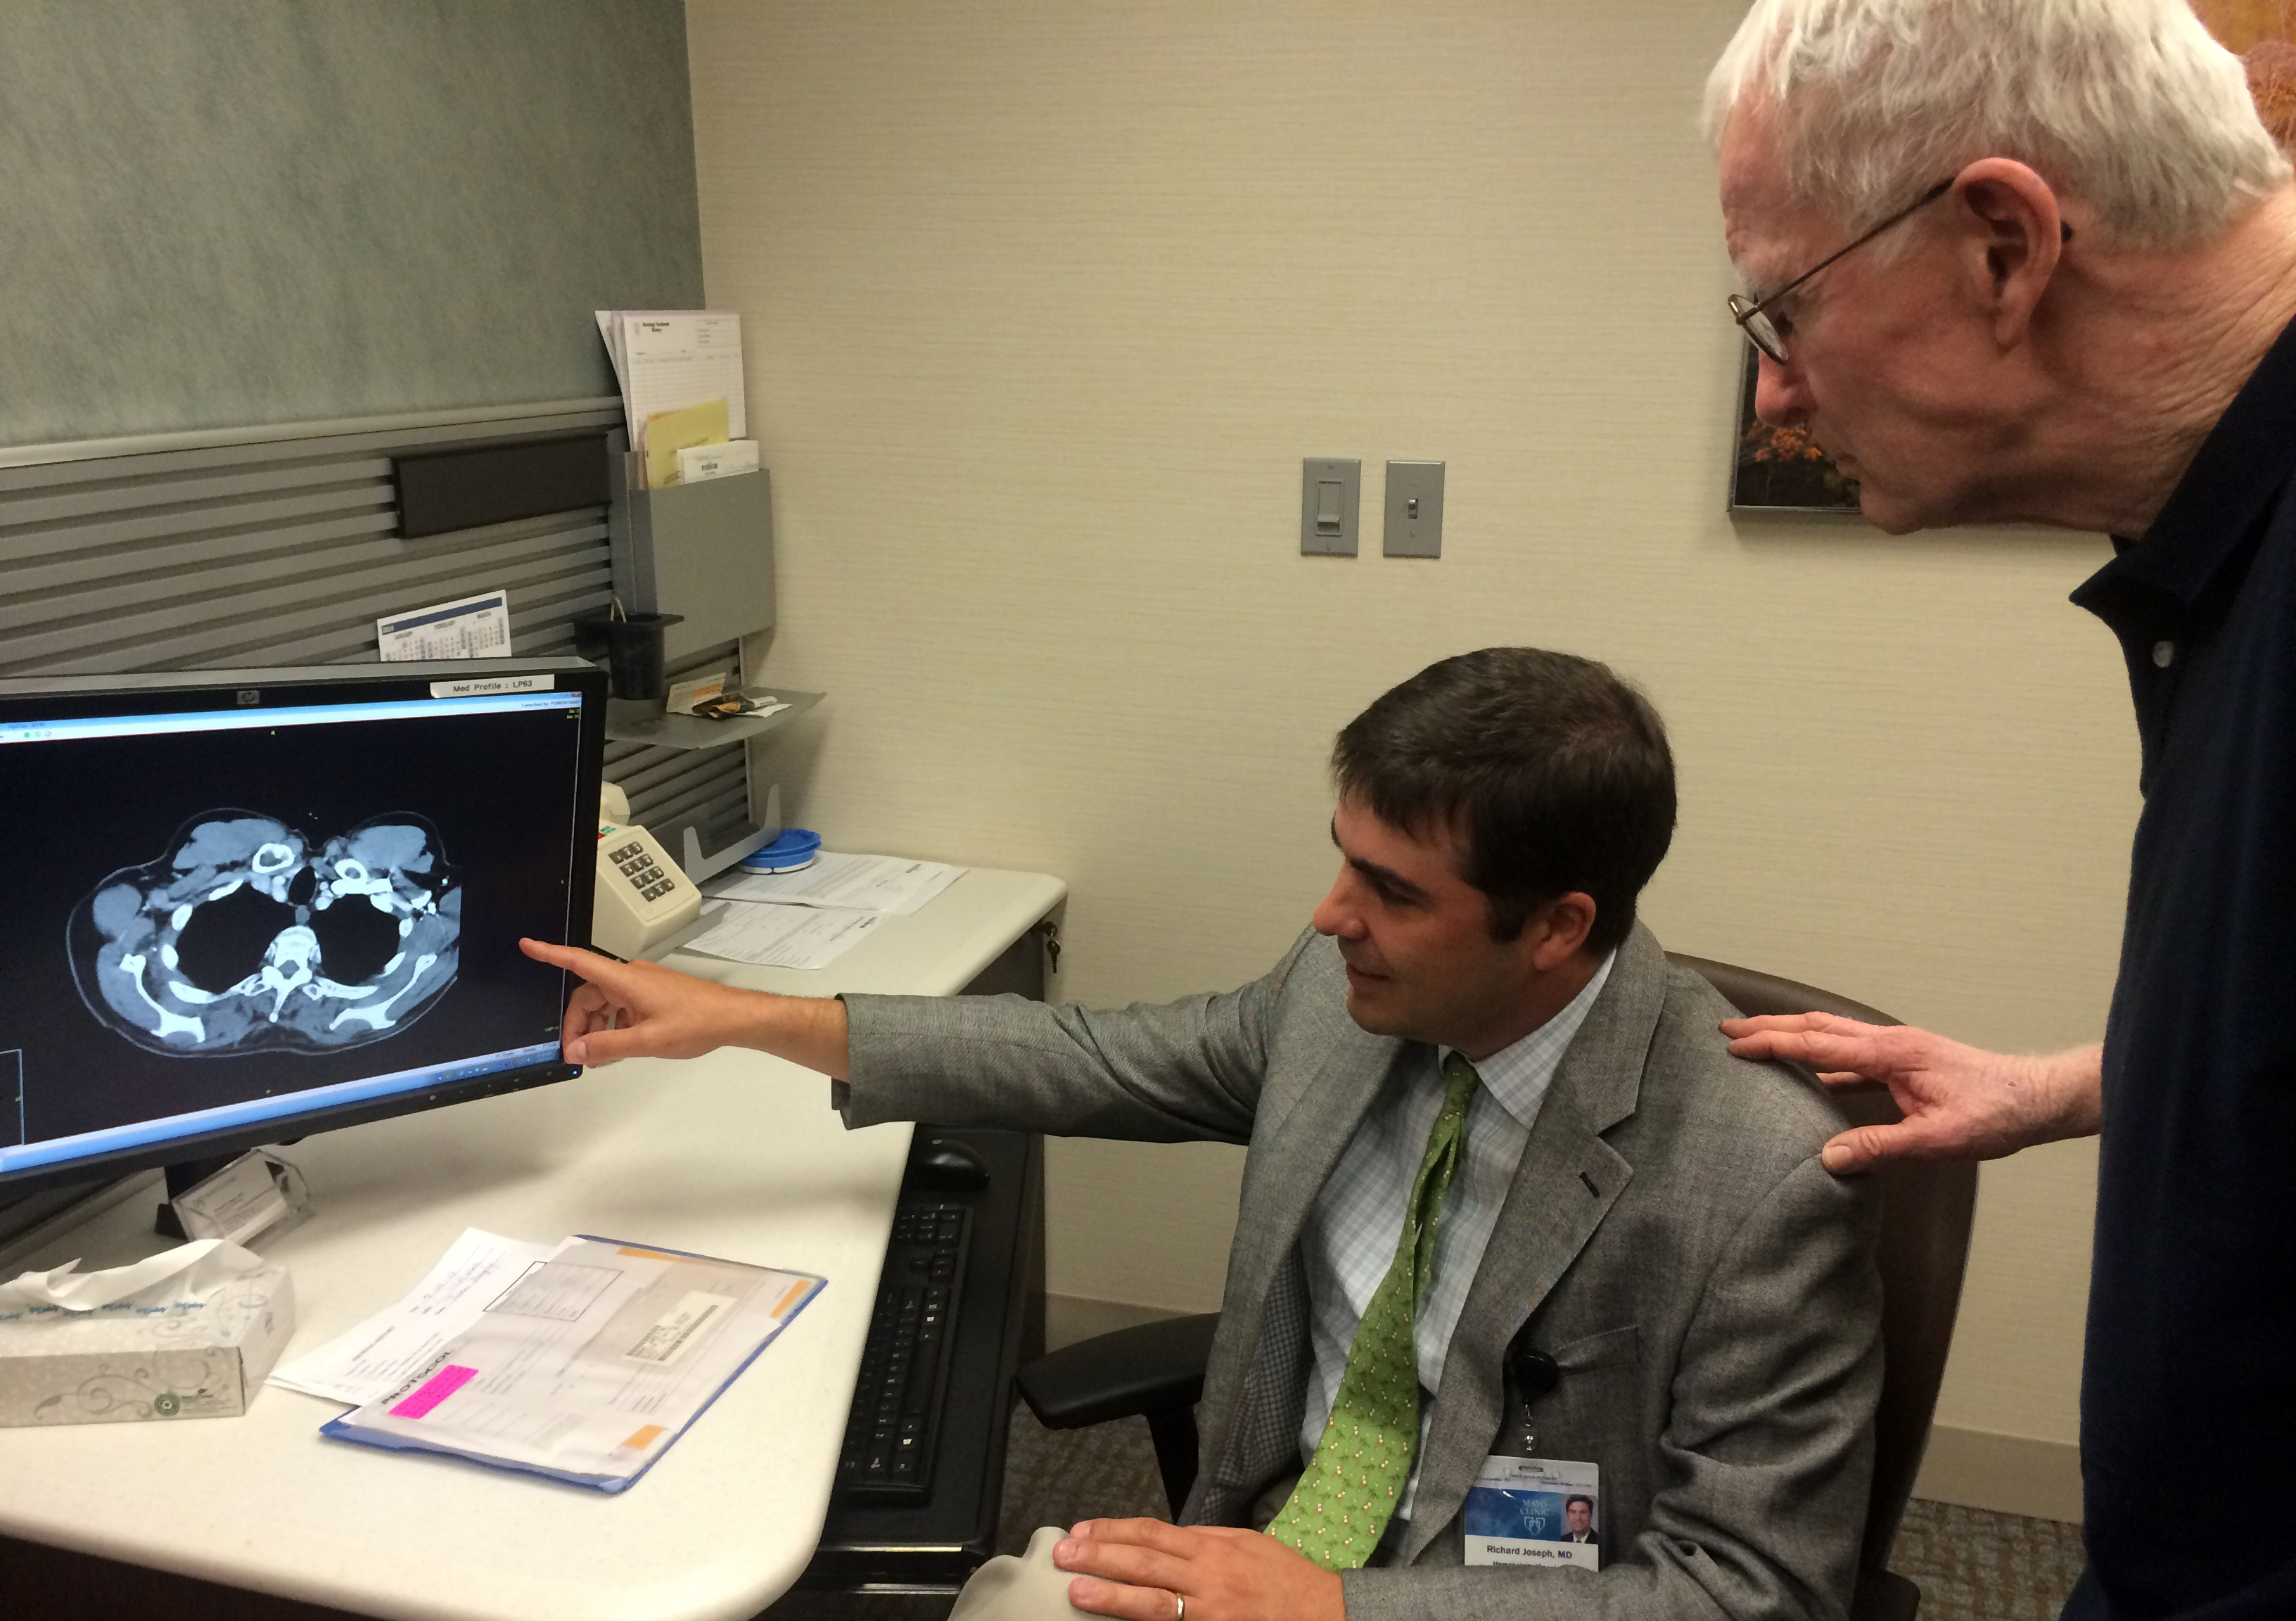 Mayo Clinic in Florida oncologist Richard Joseph, M.D. with Mayo Clinic patient James Donaghy.